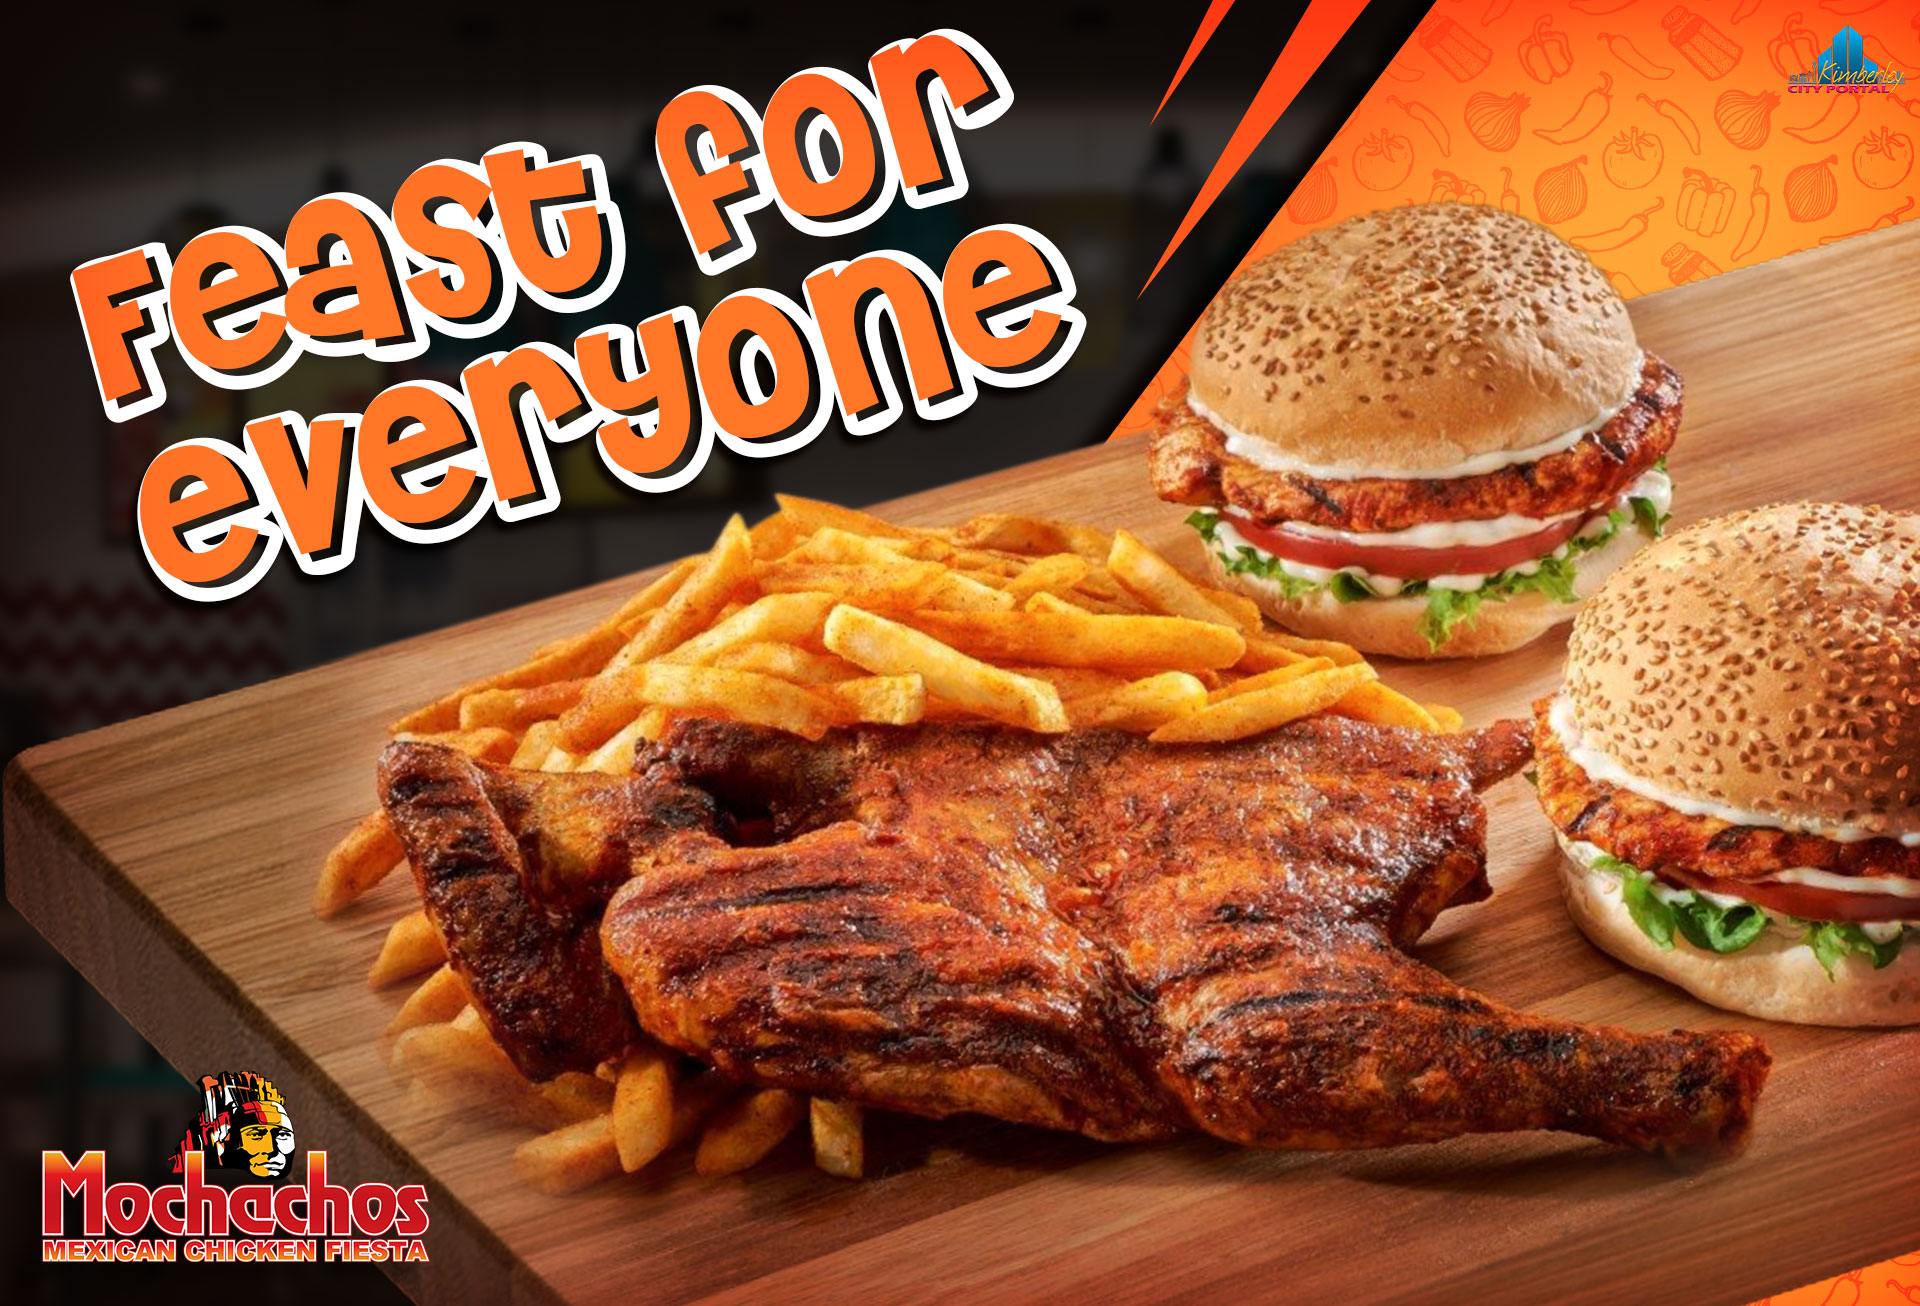 Mochachos North Cape Mall, Kimberley - A feast for everyone